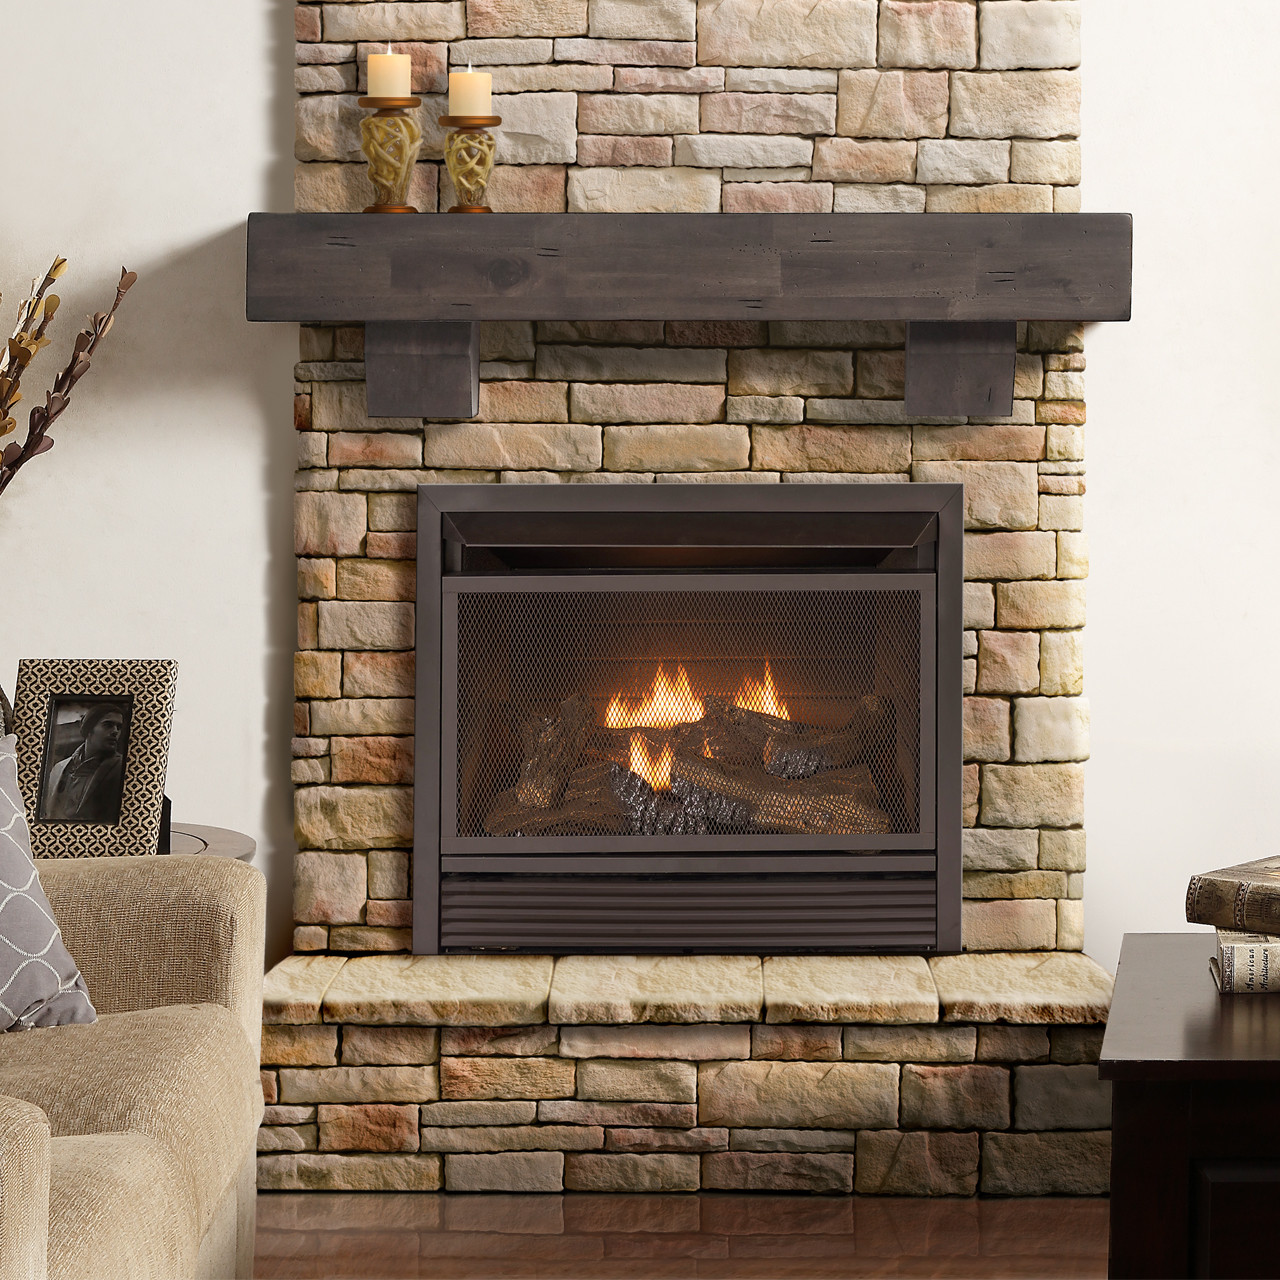 Best ideas about Vent Free Gas Fireplace Insert . Save or Pin 26K BTU Dual Fuel Vent Free Gas Firebox Insert Fireplaces Now.